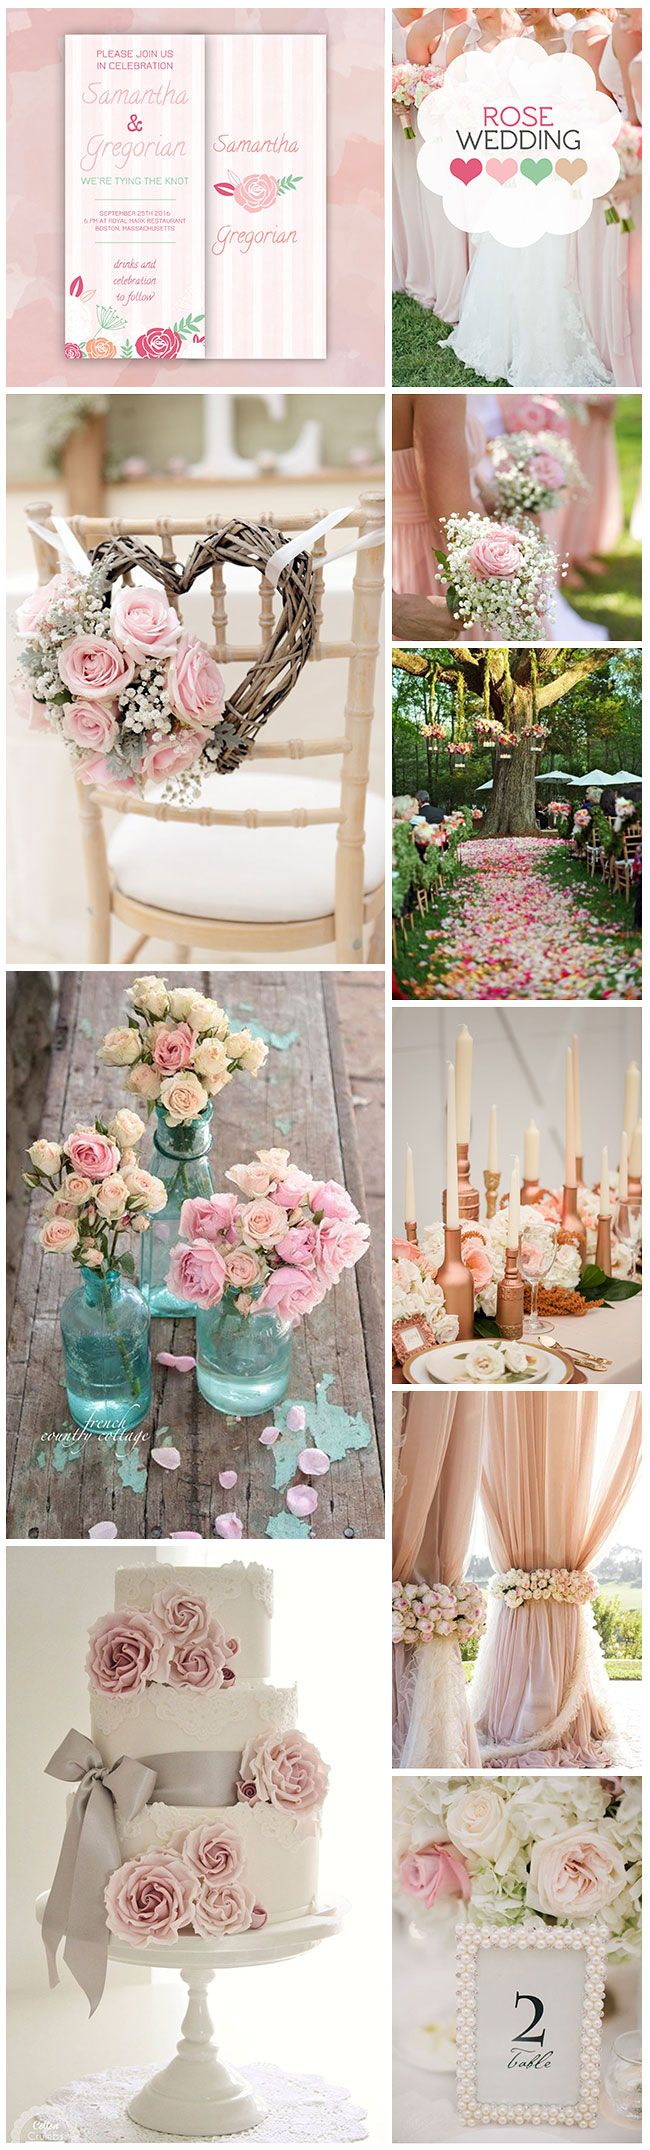 Hello dear romantics! Today we created for you a soft, feminine inspiration board for the ones that wish for a rose pink wedding